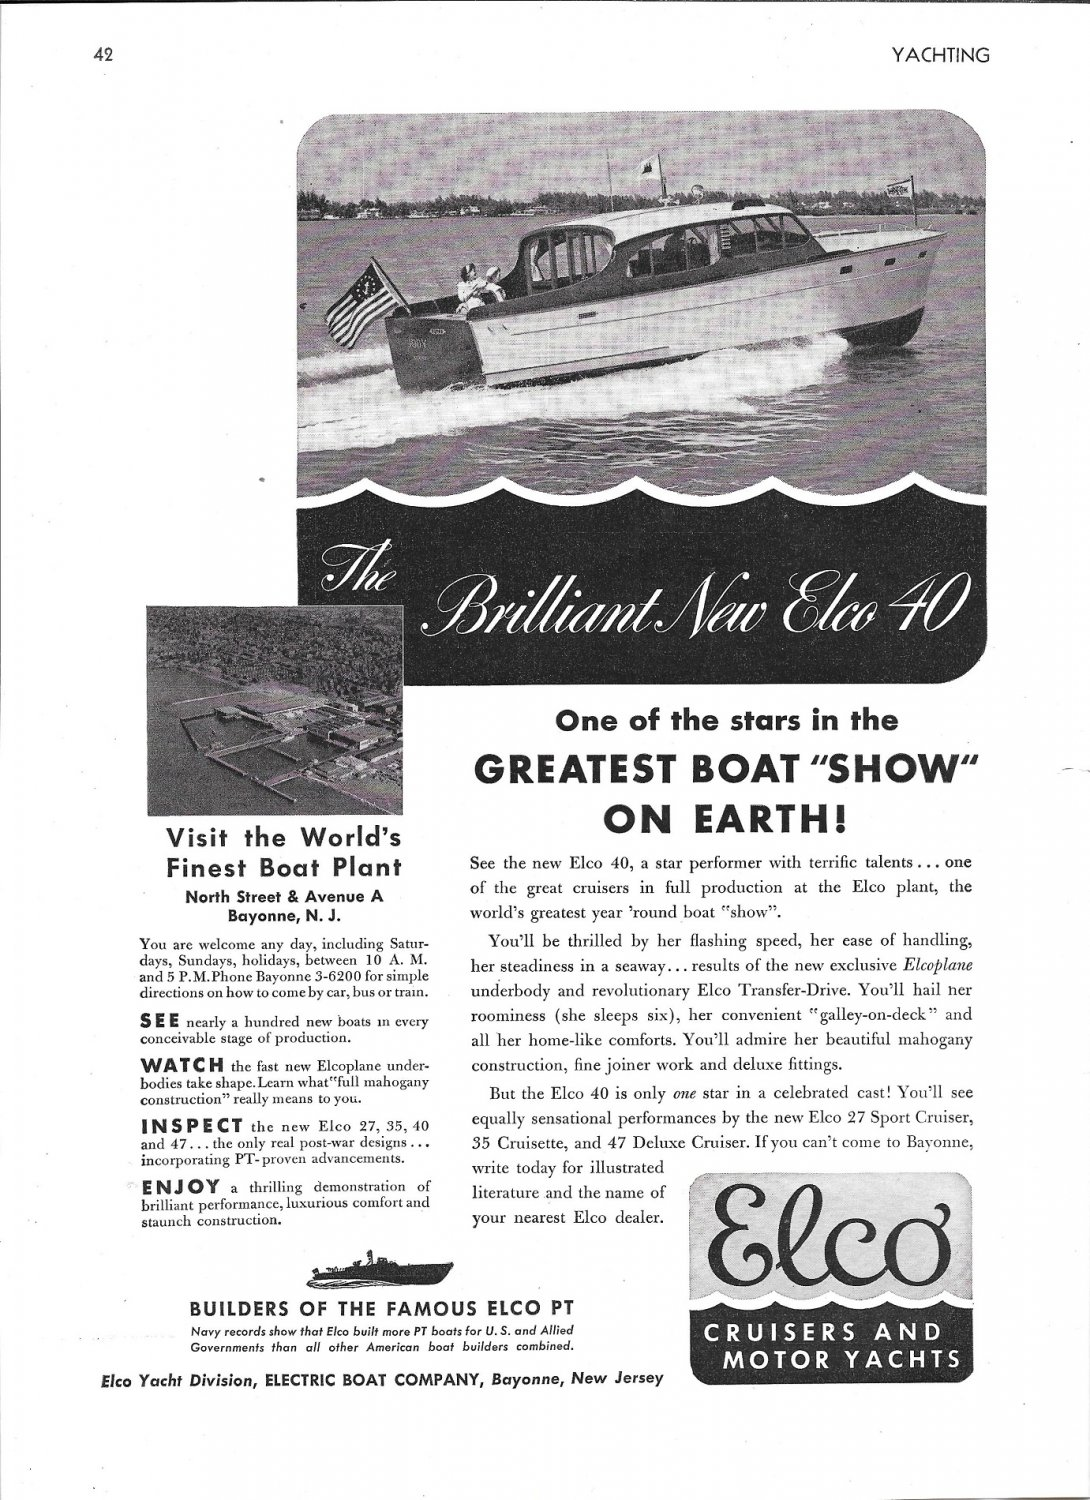 1947 Electric Boat Co Ad- Nice Photo of Elco 40 Yacht